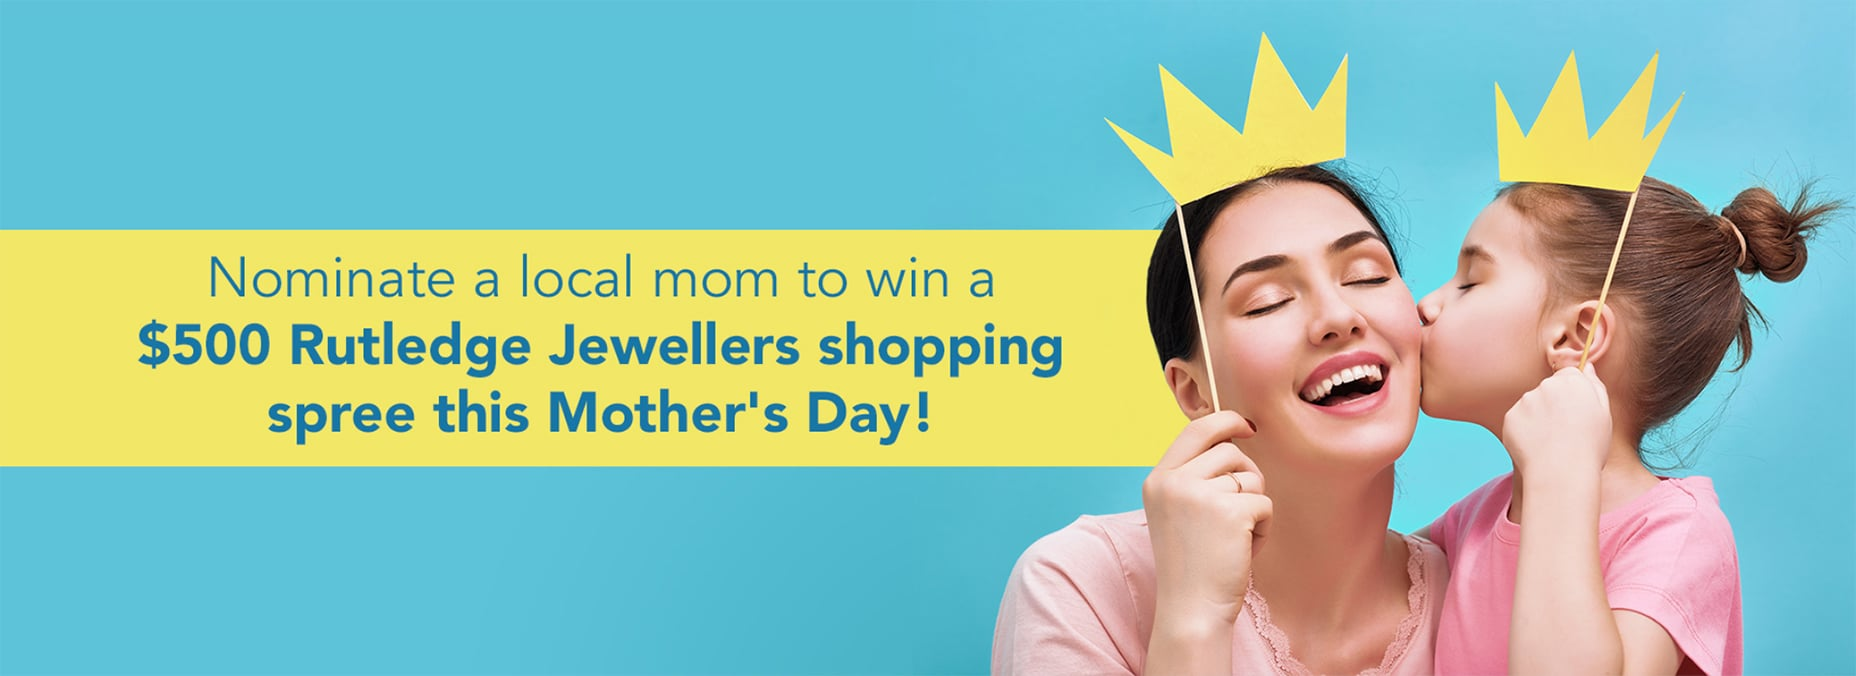 mothersday-shoppingspree-prize